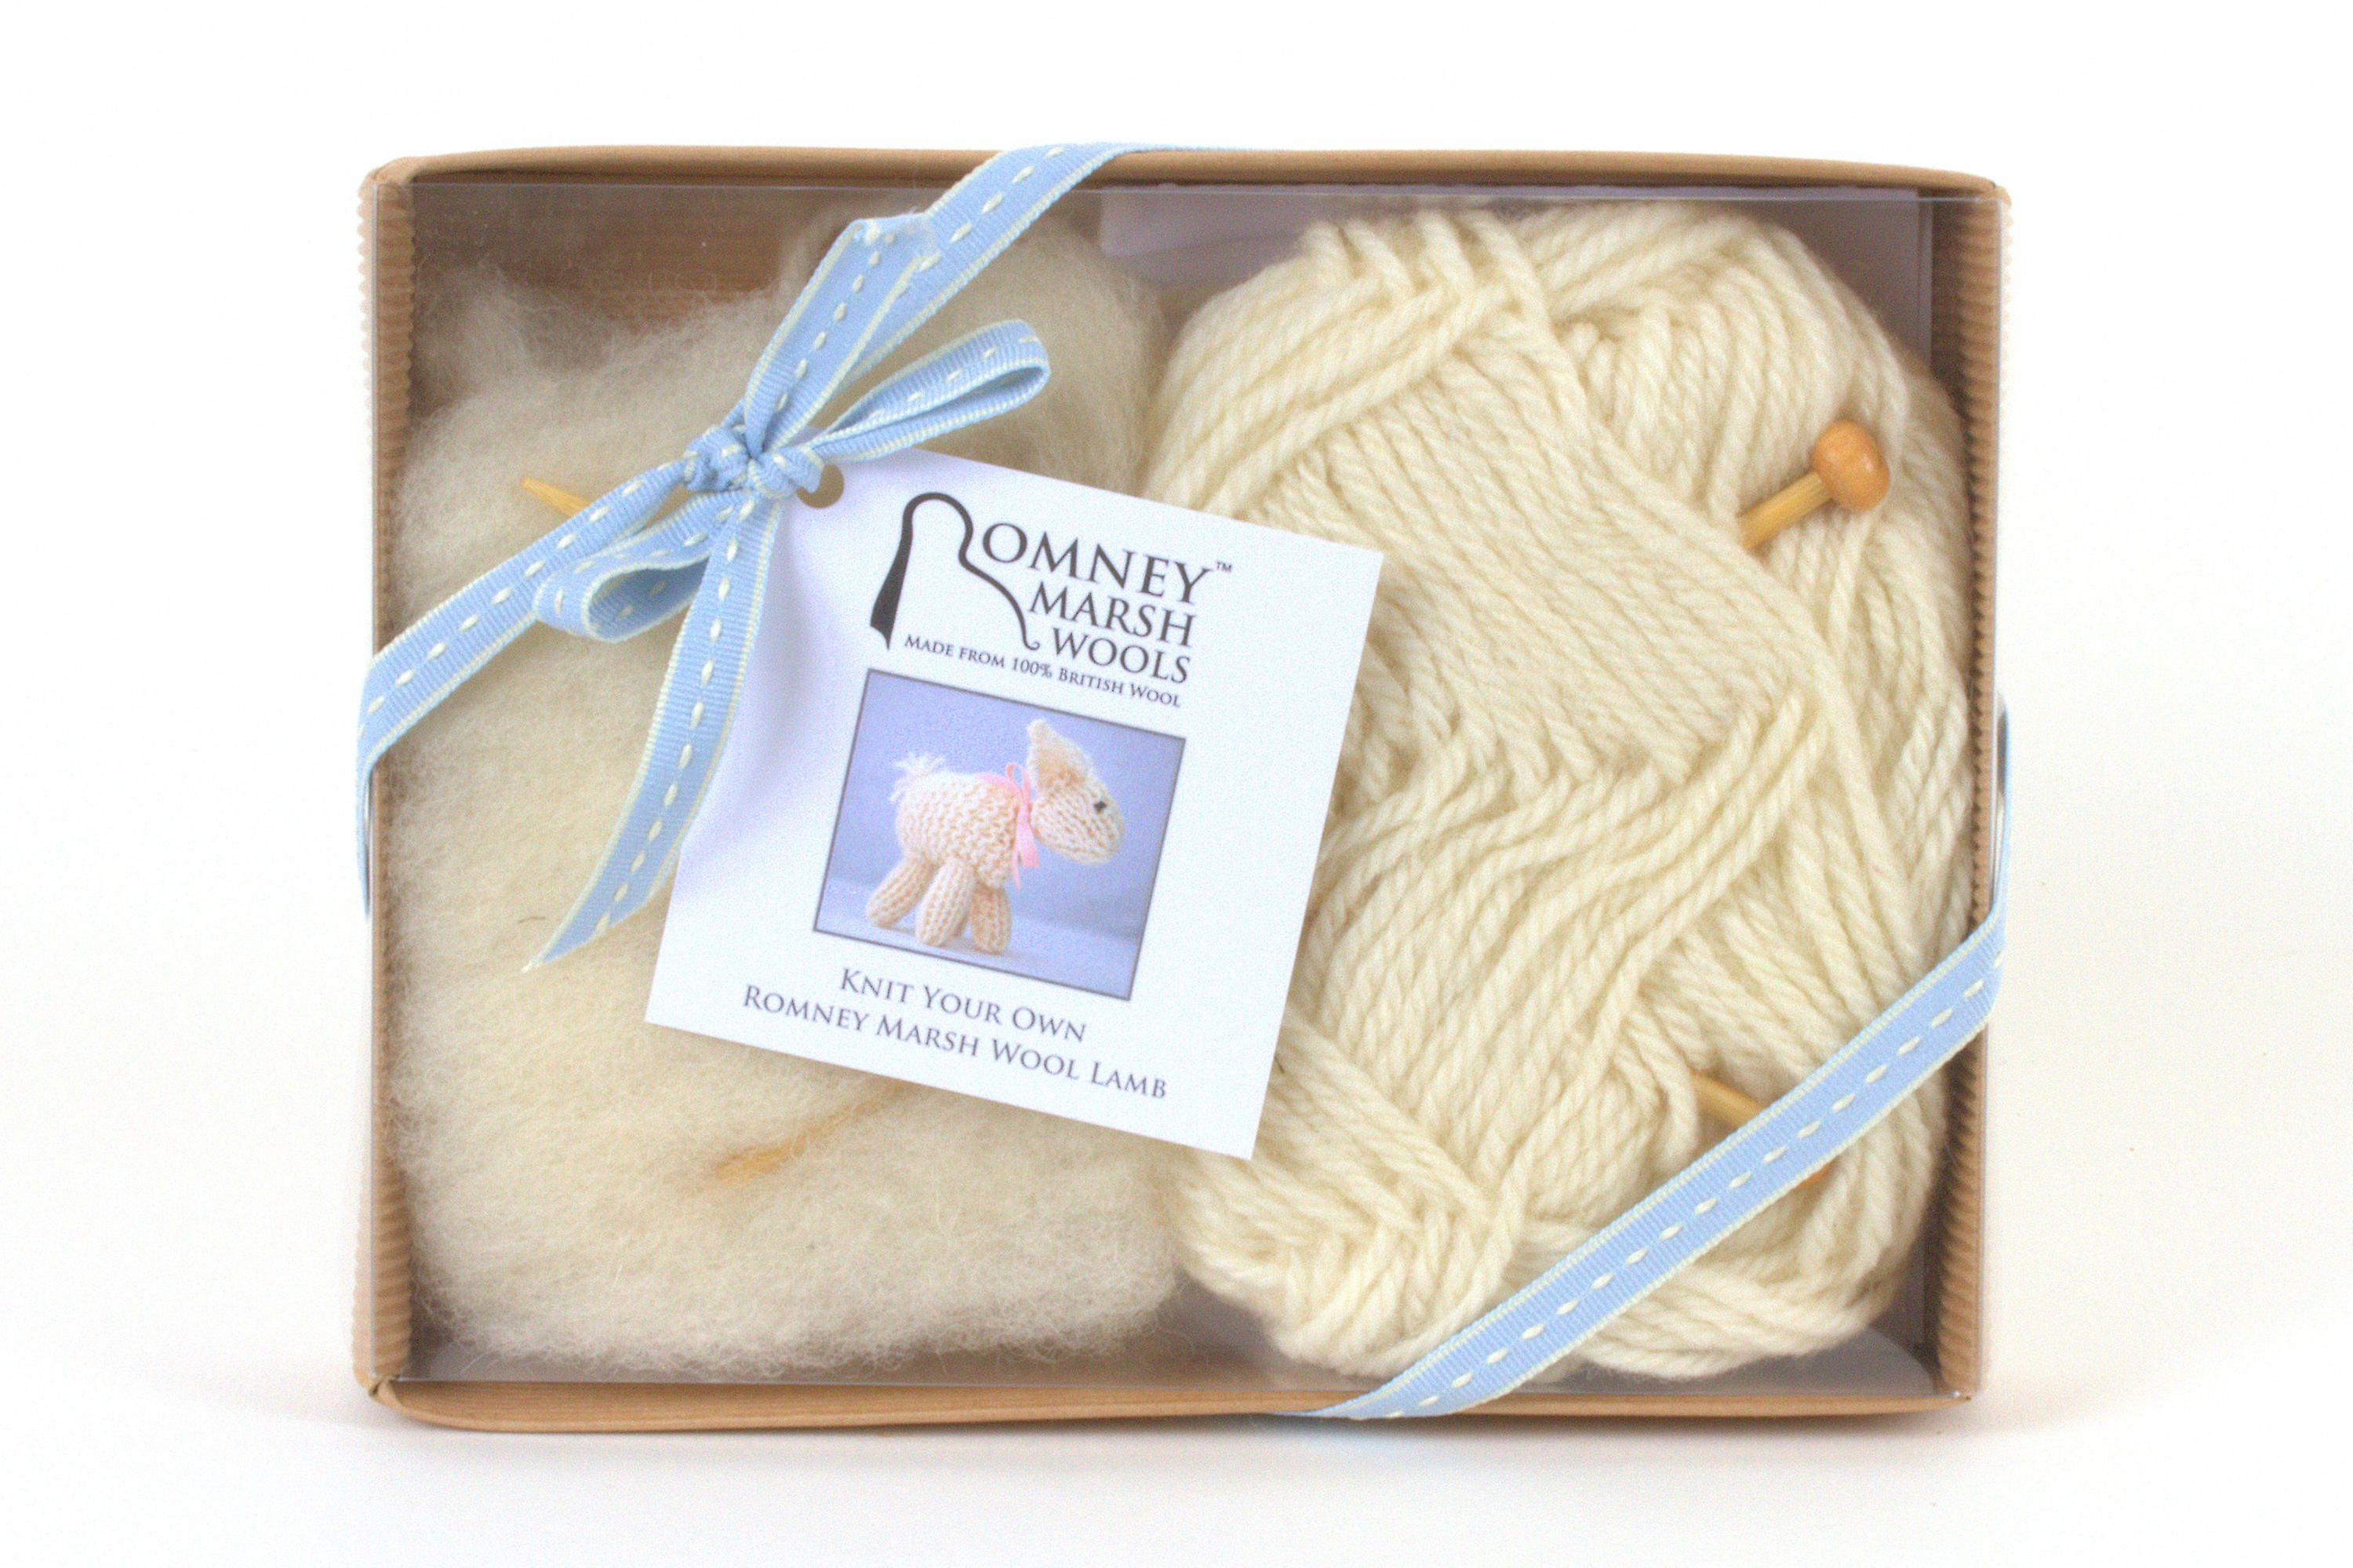 Little Lamb Knit Kit